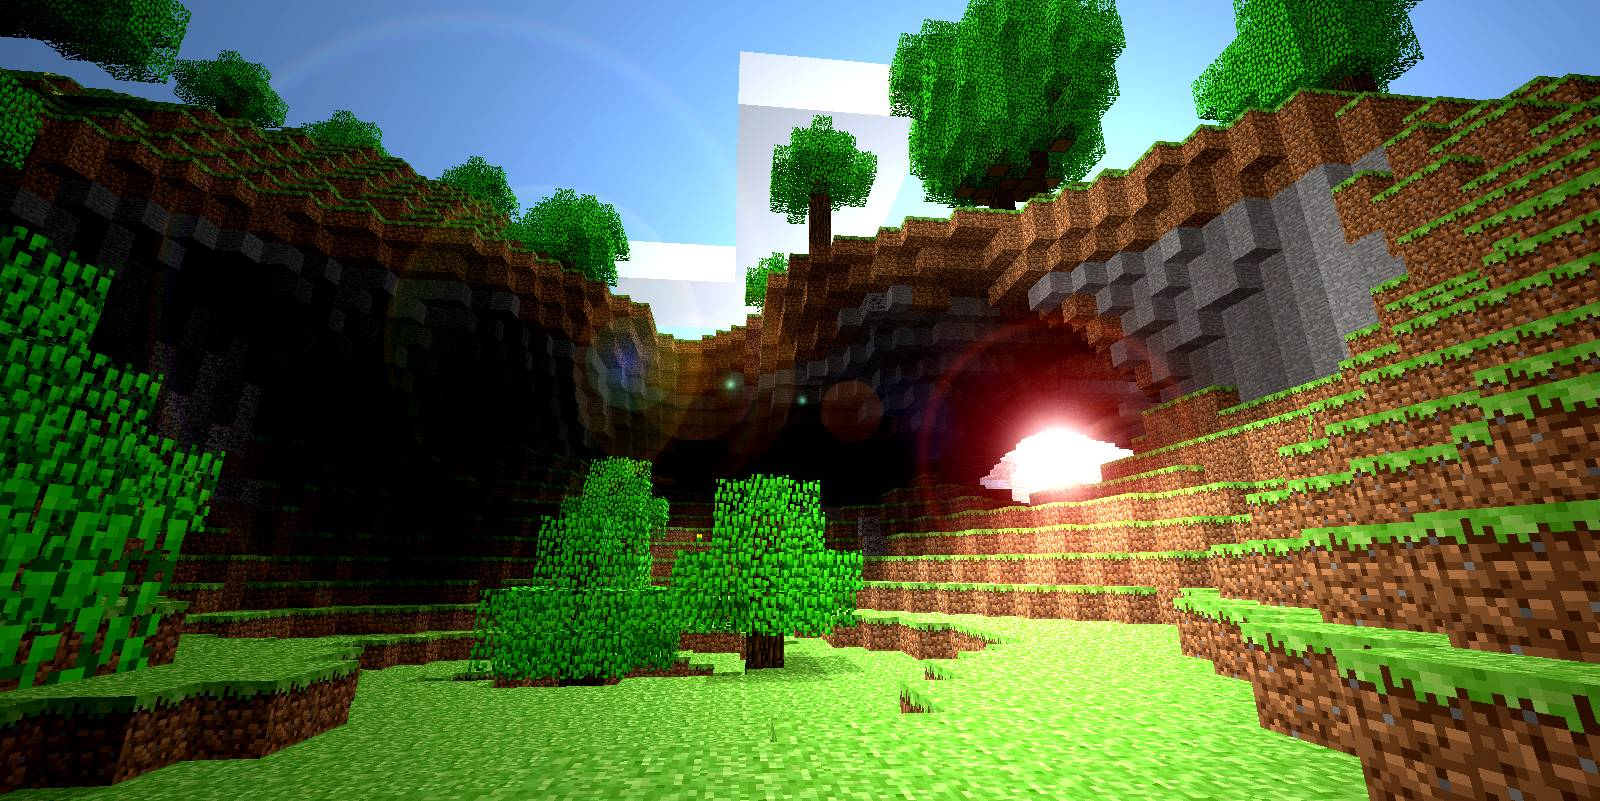 Wallpapers For > Cool Minecraft Backgrounds Hd